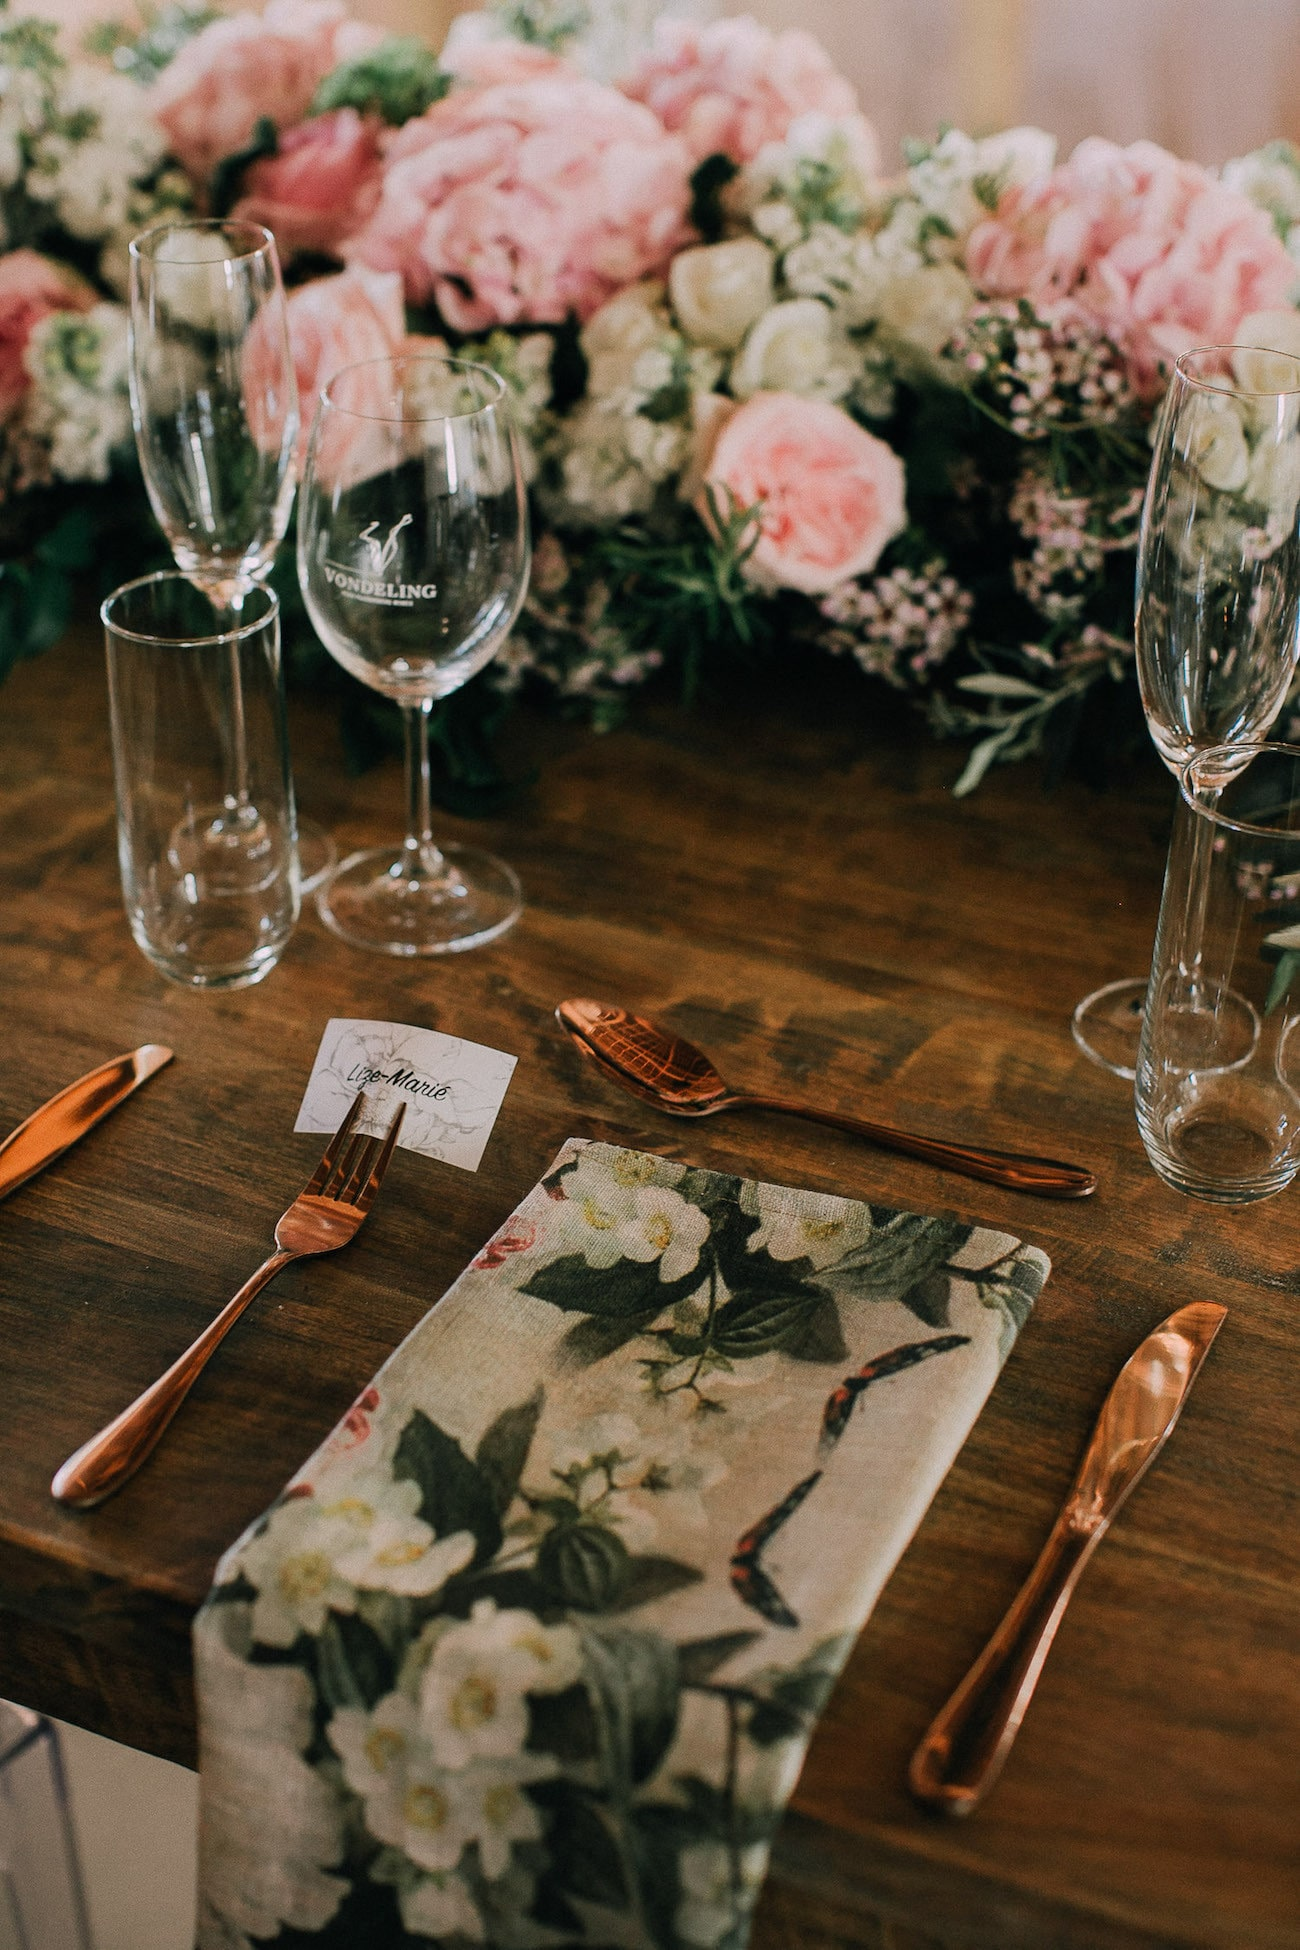 Place Setting with Botanical Linens & Copper Cutlery | Image: Michelle du Toit